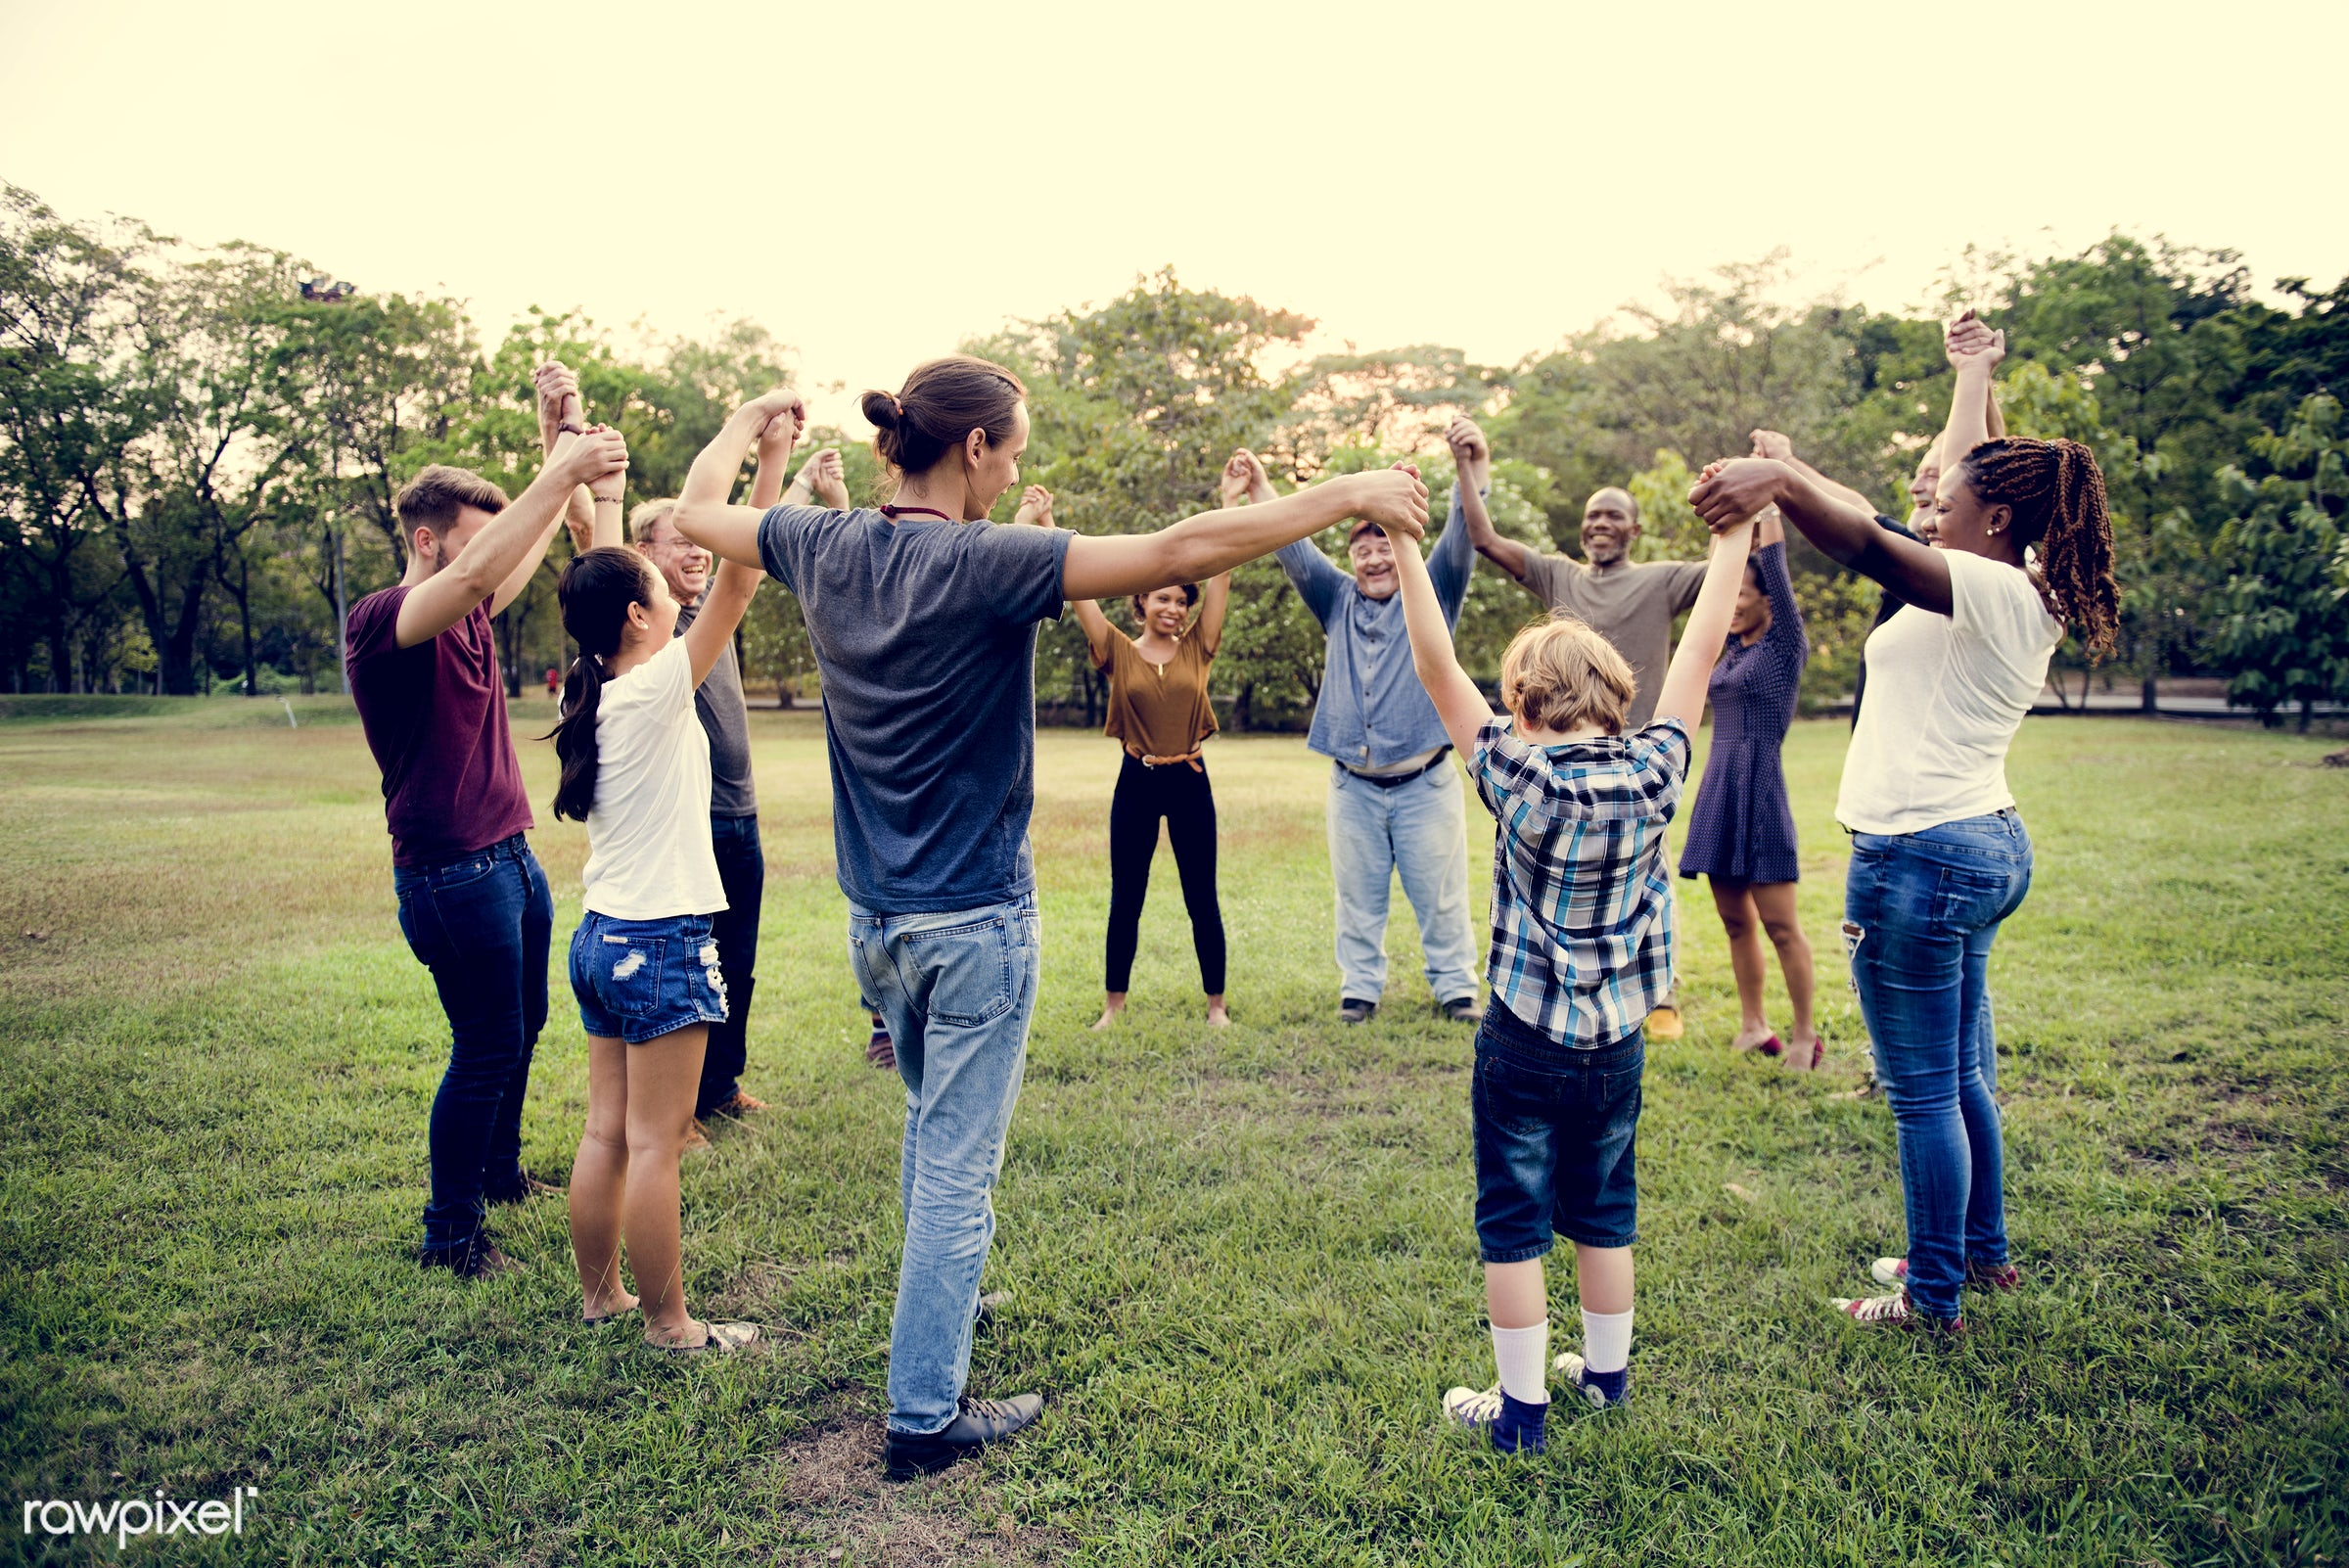 expression, holding, joy, arms raised, children, circle, beauty, holding hand, people, friends, nature, young adult,...